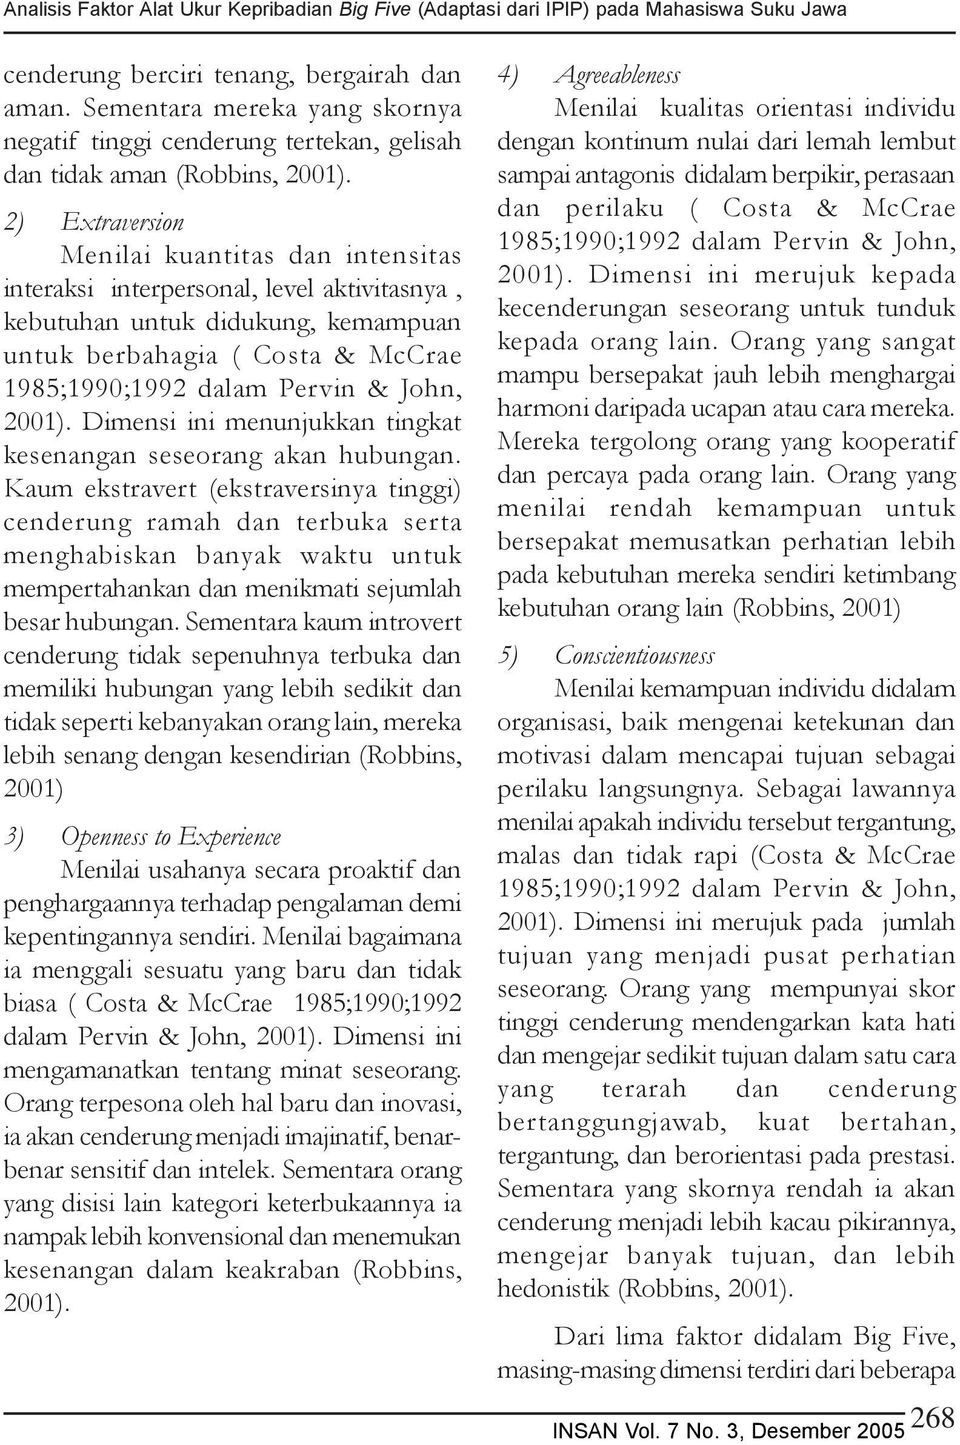 2) Extraversion Menilai kuantitas dan intensitas interaksi interpersonal, level aktivitasnya, kebutuhan untuk didukung, kemampuan untuk berbahagia ( Costa & McCrae 1985;1990;1992 dalam Pervin & John,